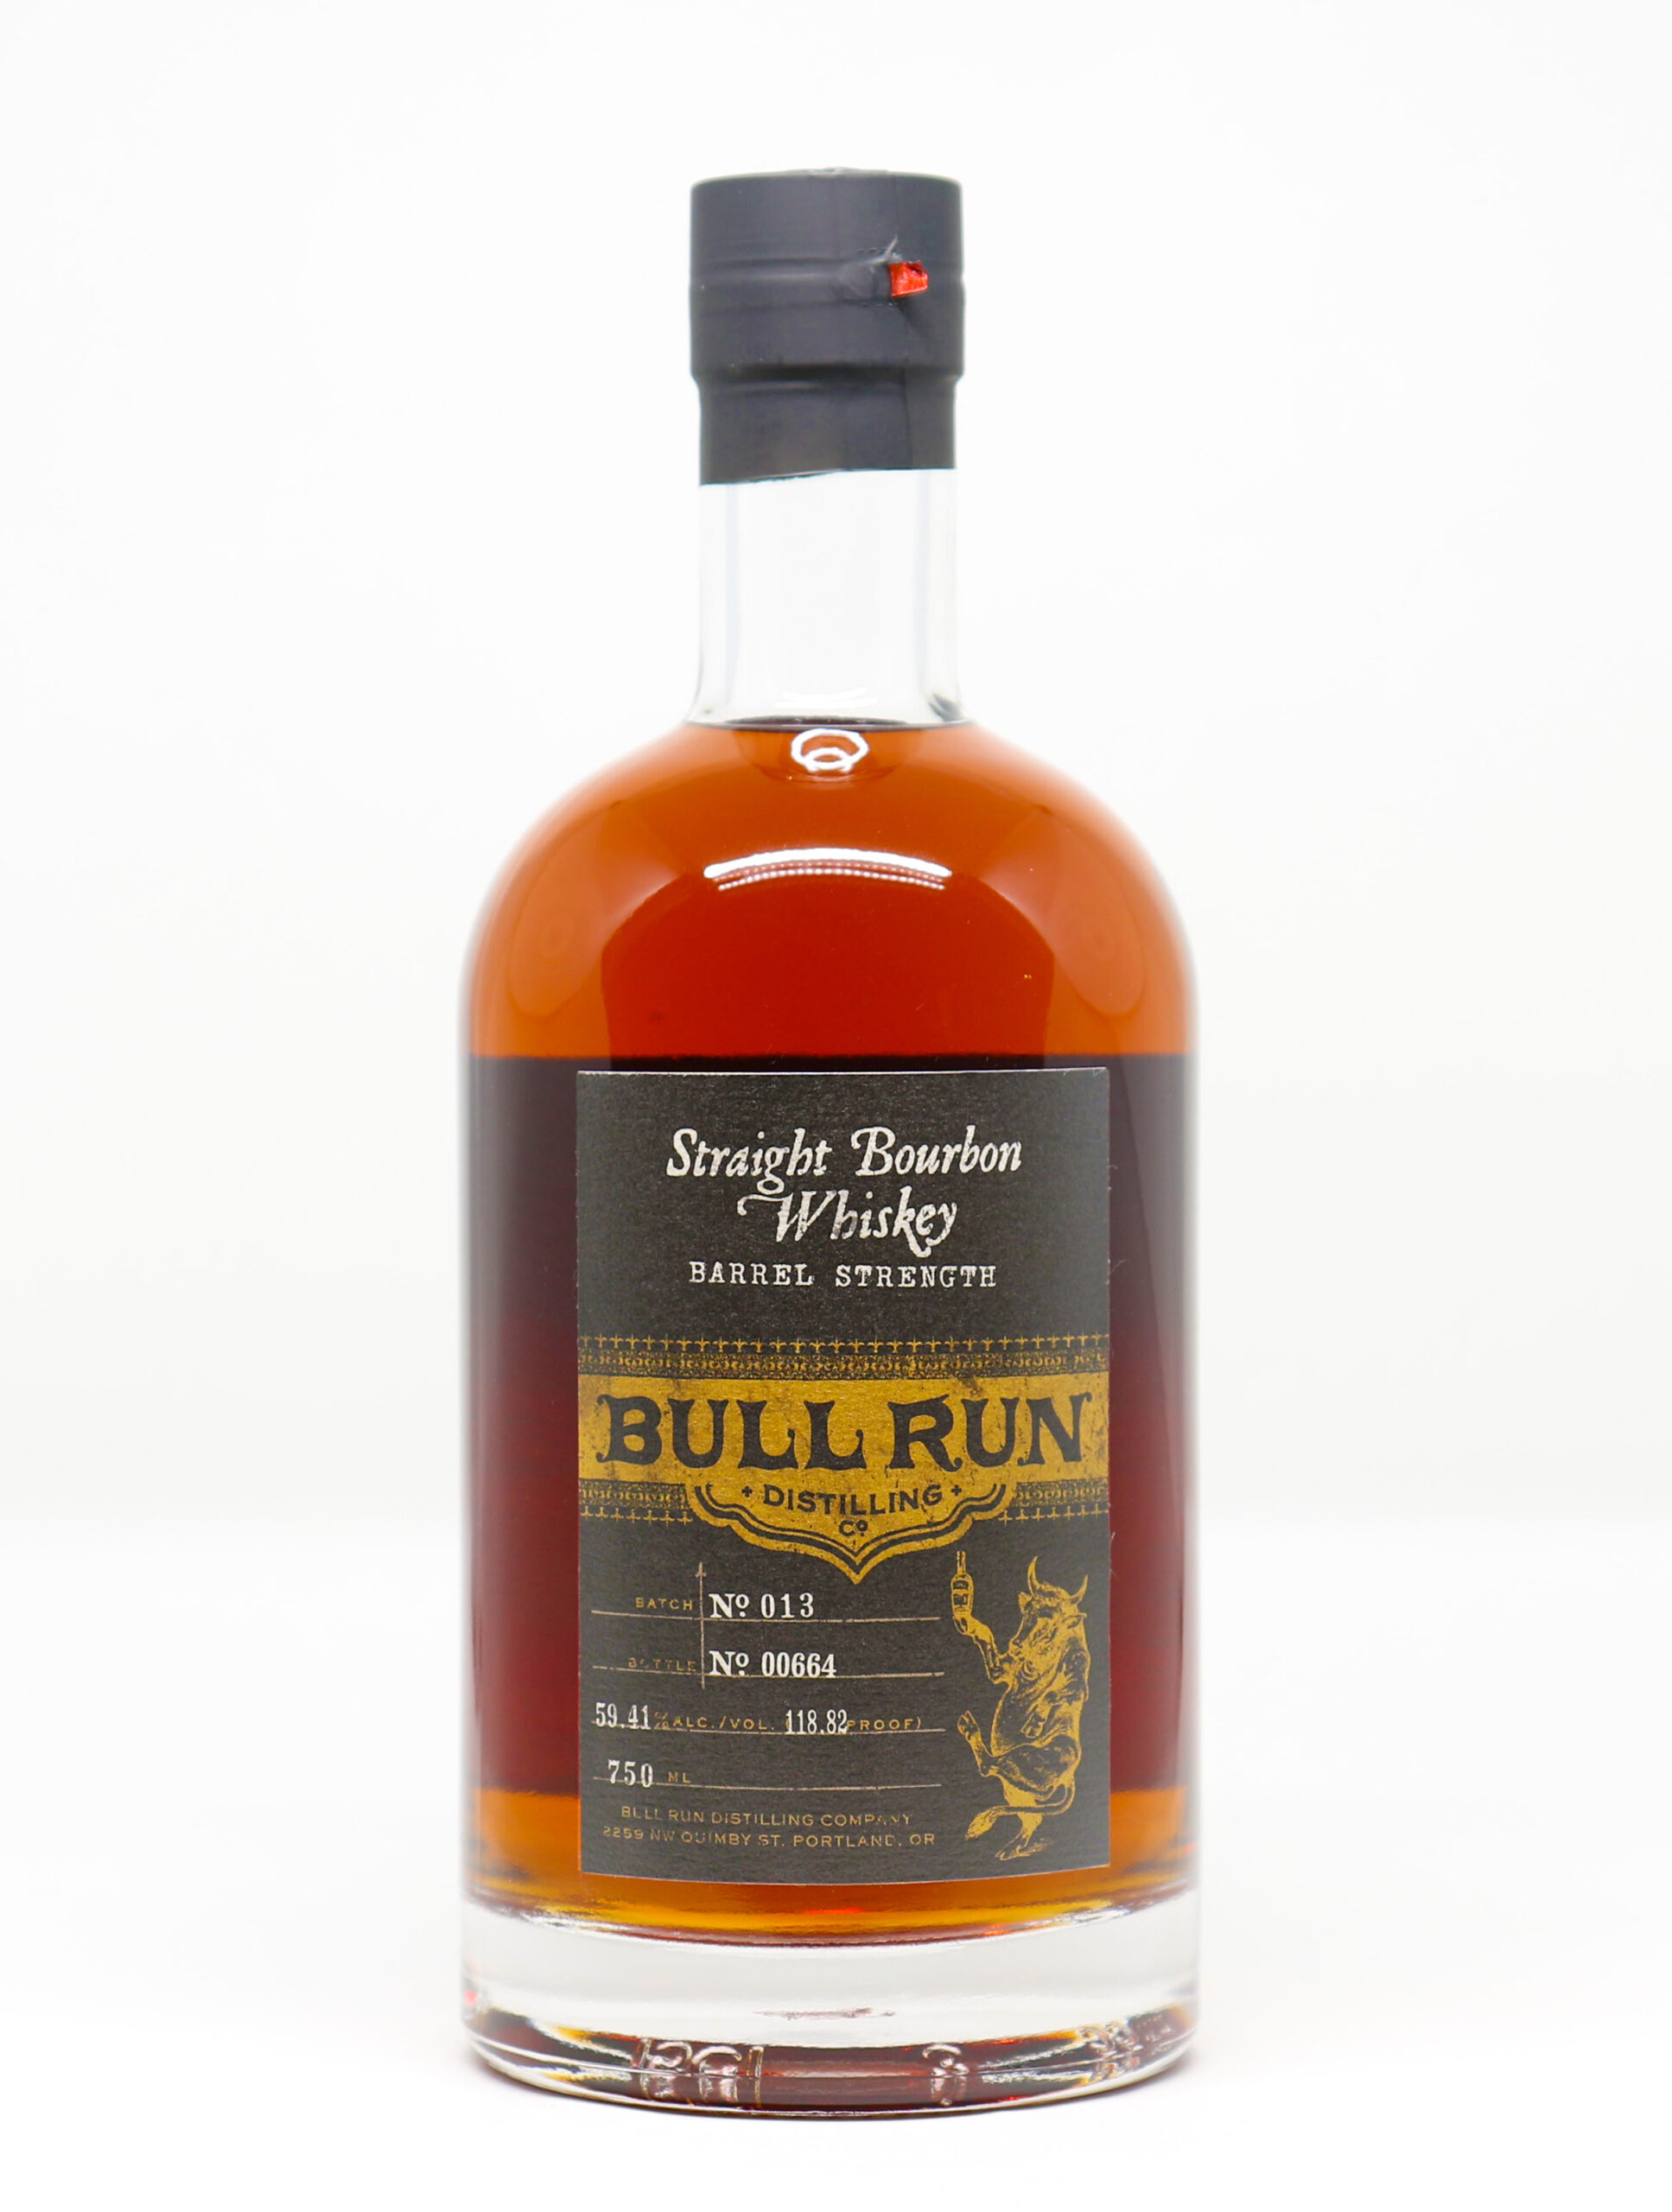 Bull Run – Straight Bourbon Whiskey: Barrel Strength